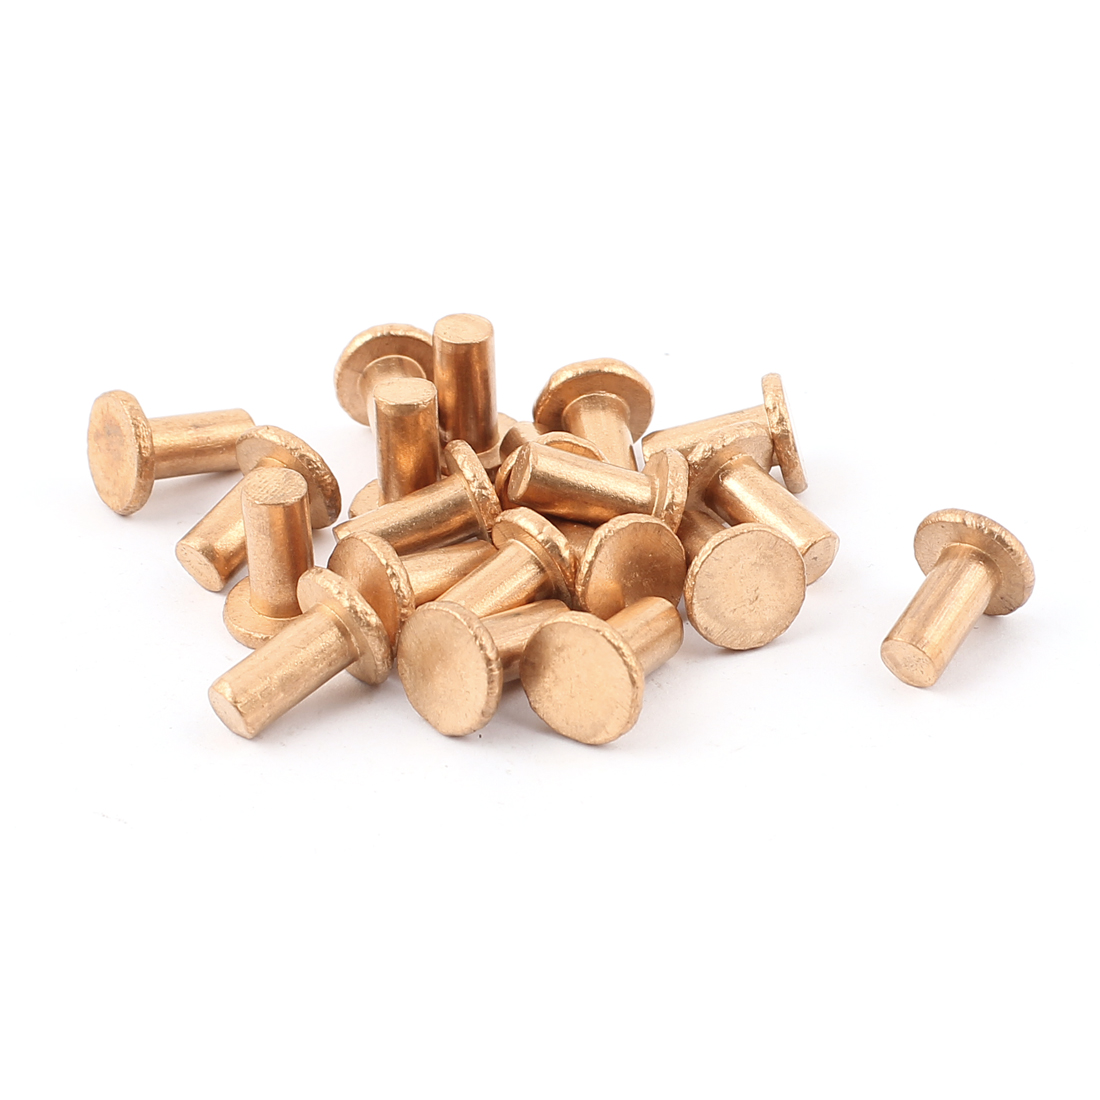 "20 Pcs 15/64"" x 15/32"" Flat Head Copper Solid Rivets Fasteners"